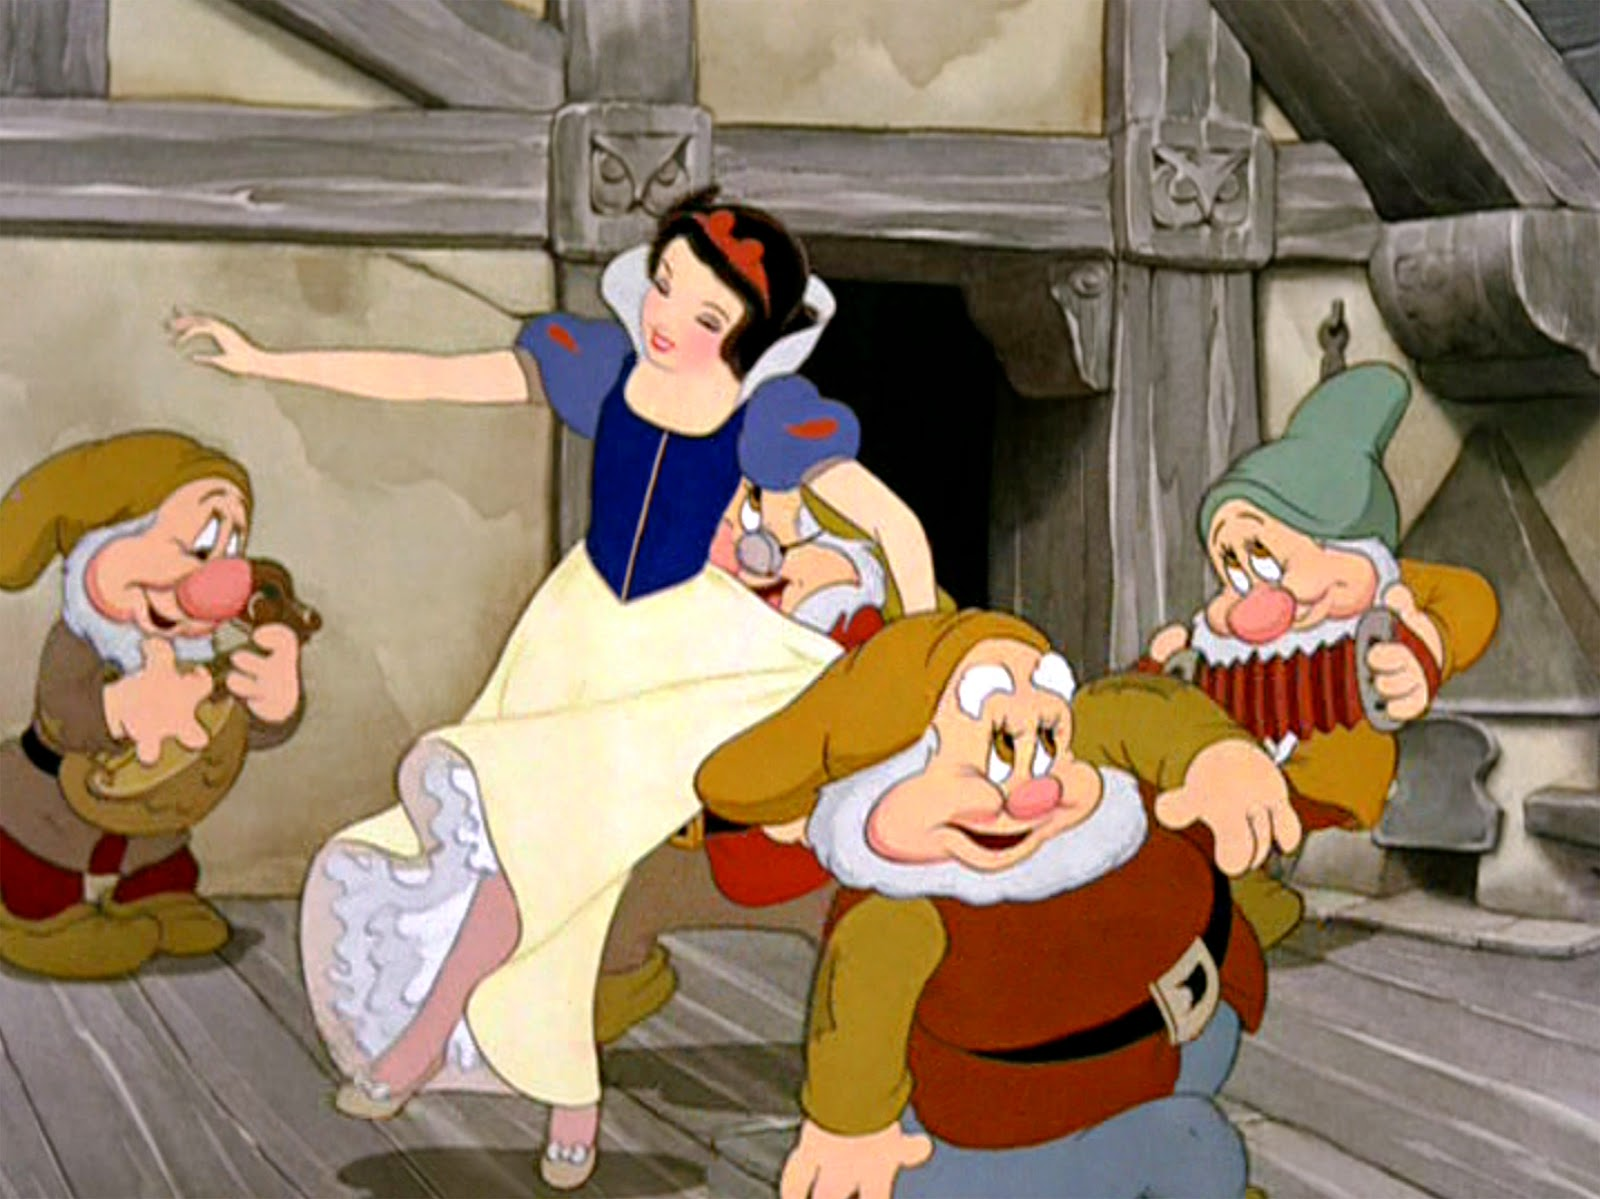 The animated movie snow white and the seven dwarfs directed by david hand supervising seen here the princess snow white dances with the dwarfs